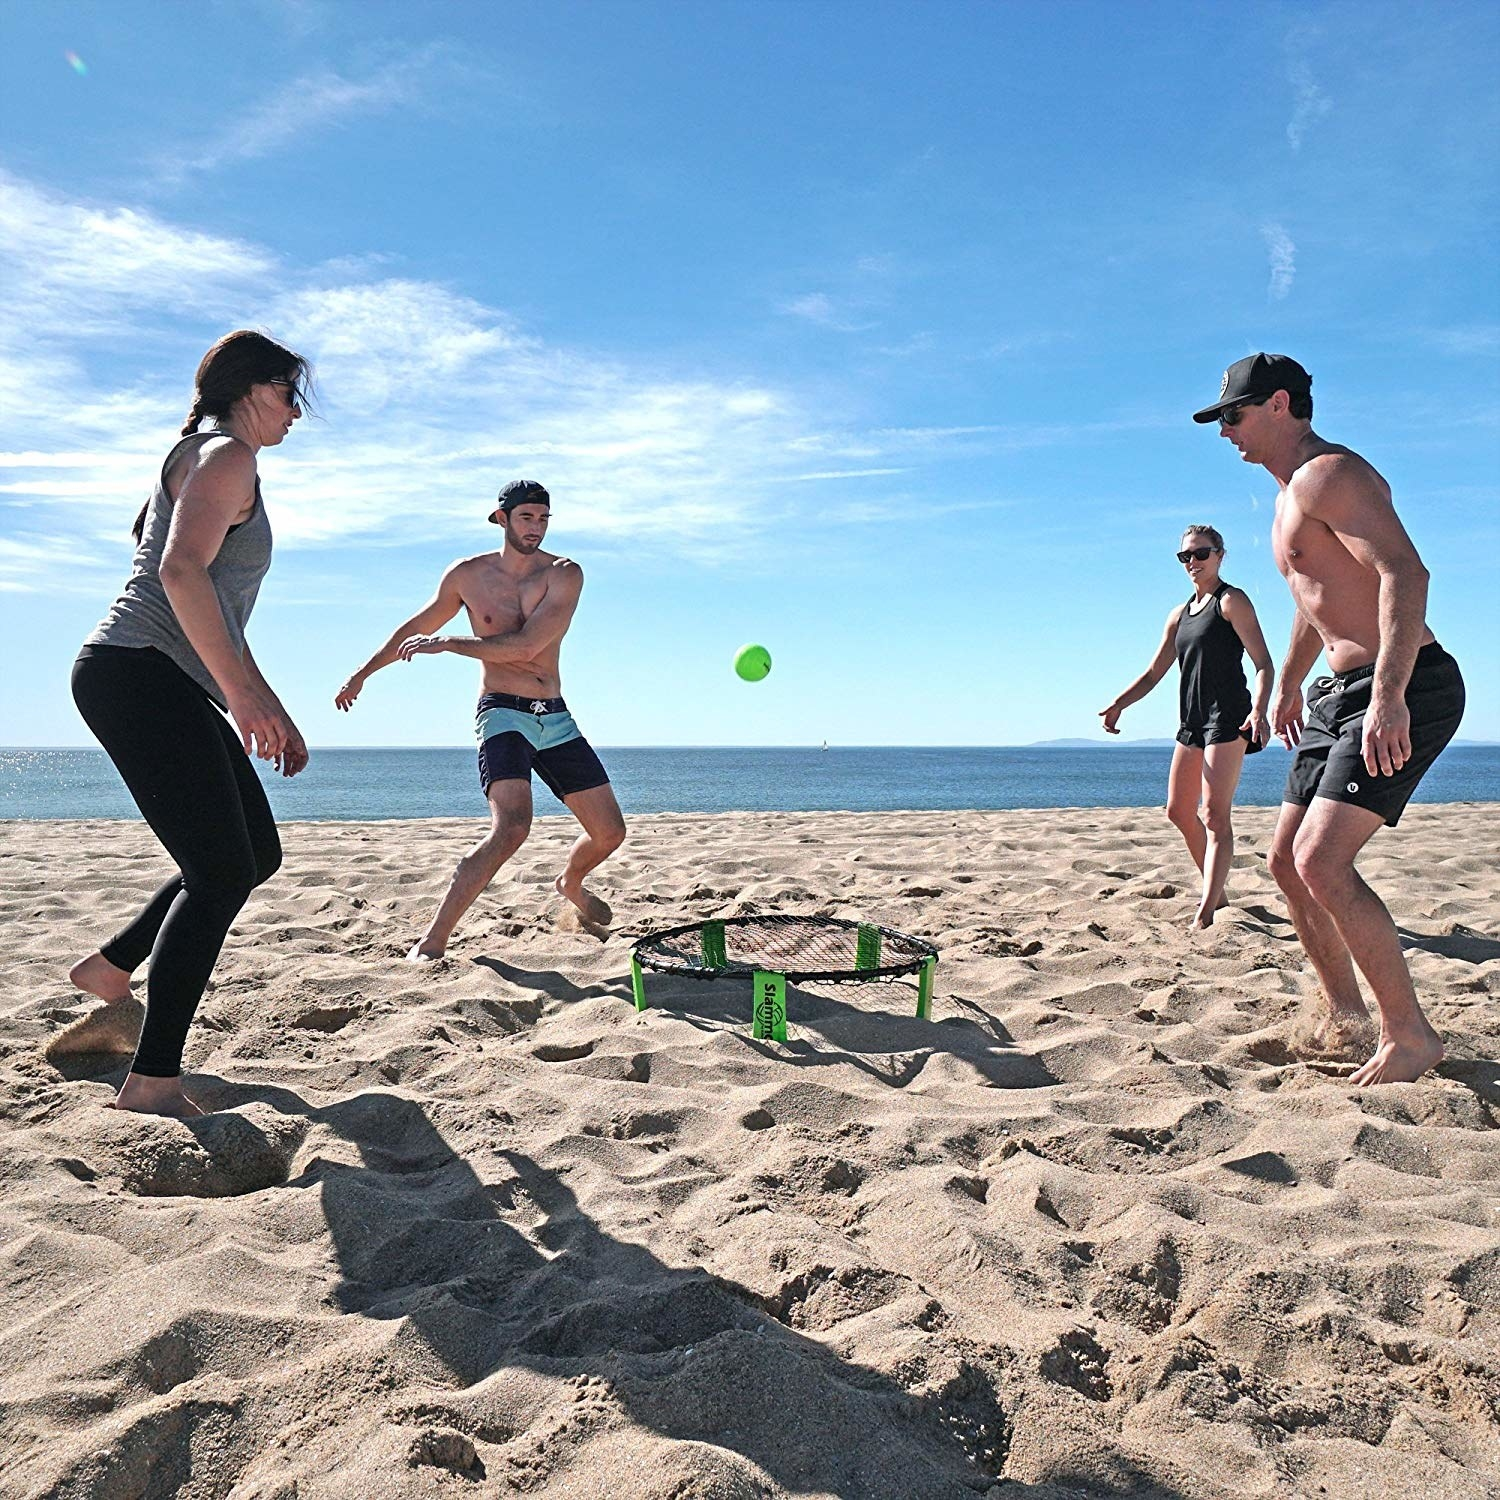 group of people standing around a slammo game at the beach